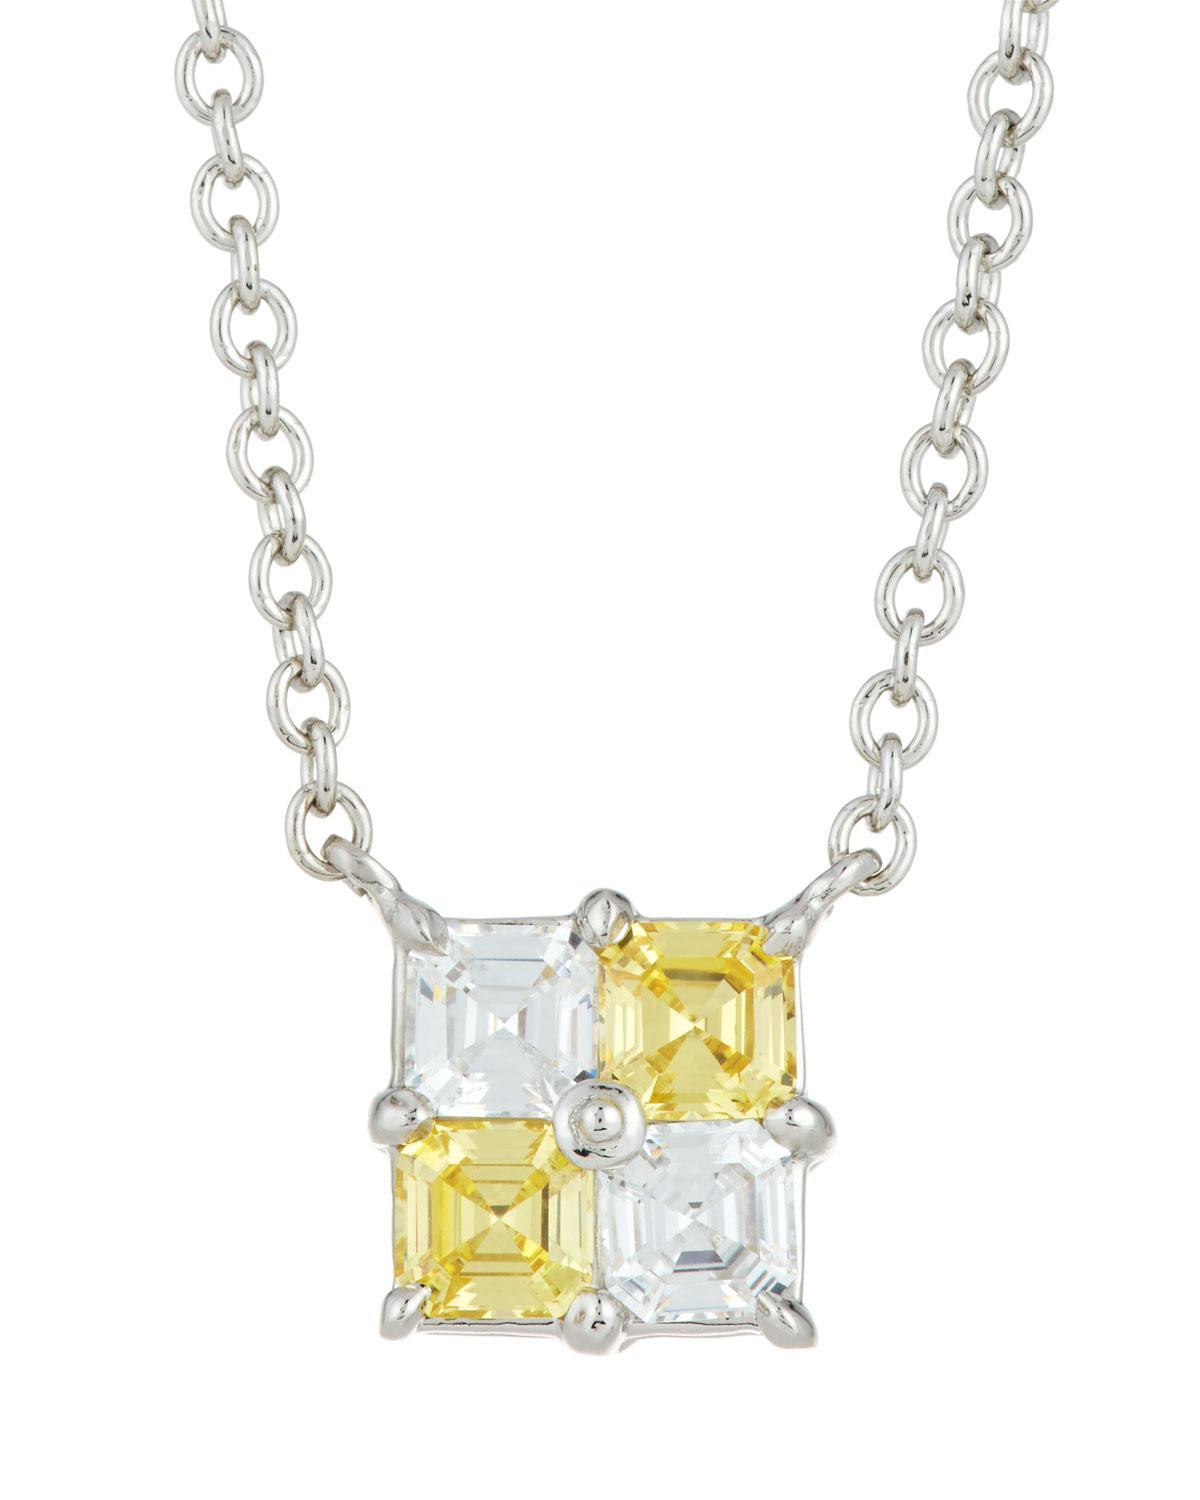 Fantasia Asscher-Cut Crystal Pendant Necklace OLCu3